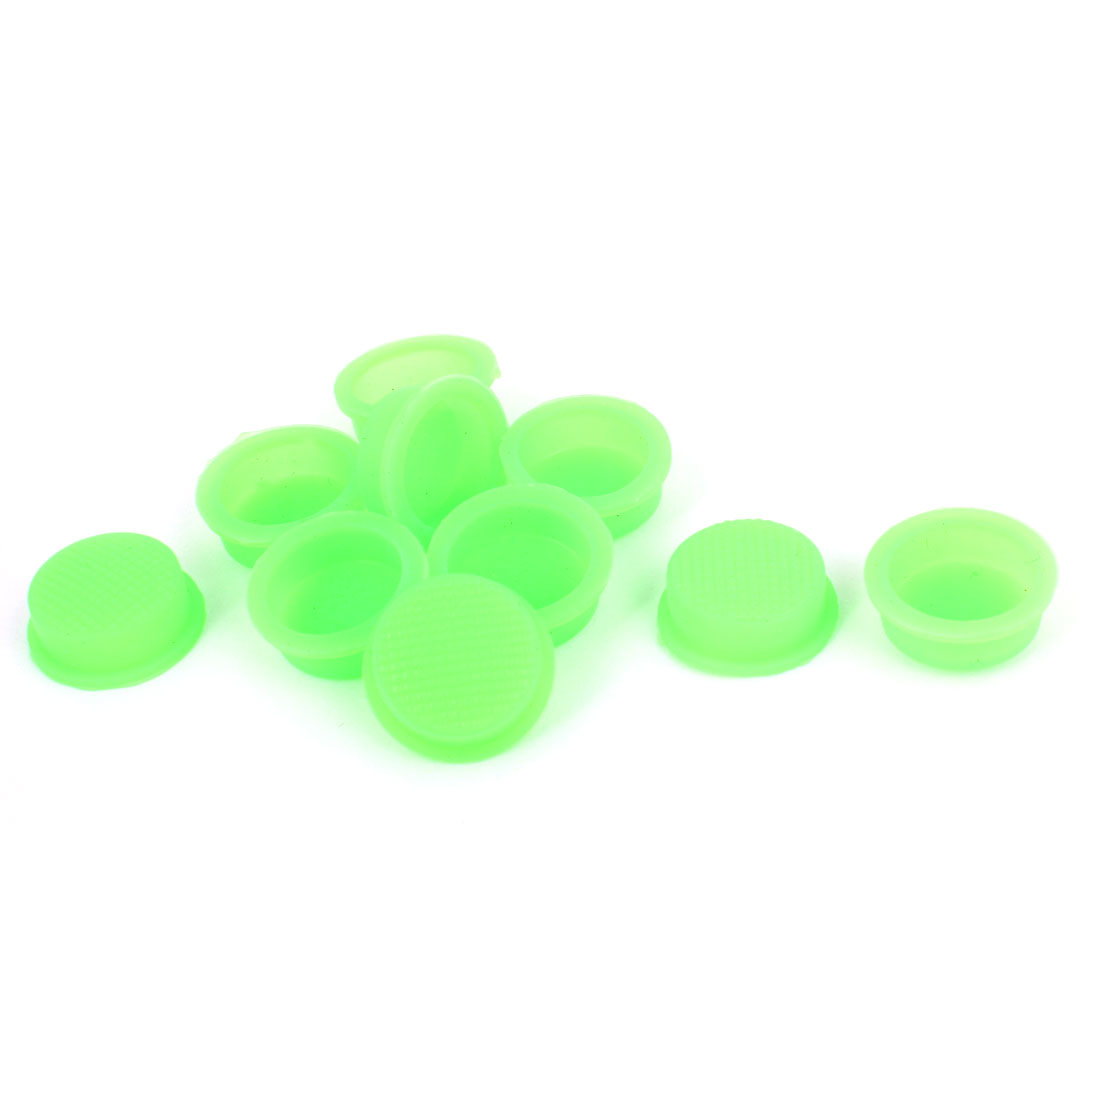 10pcs 13mm Dia Waterproof Cover Cap Guard Green for Round Head Rocker Switch